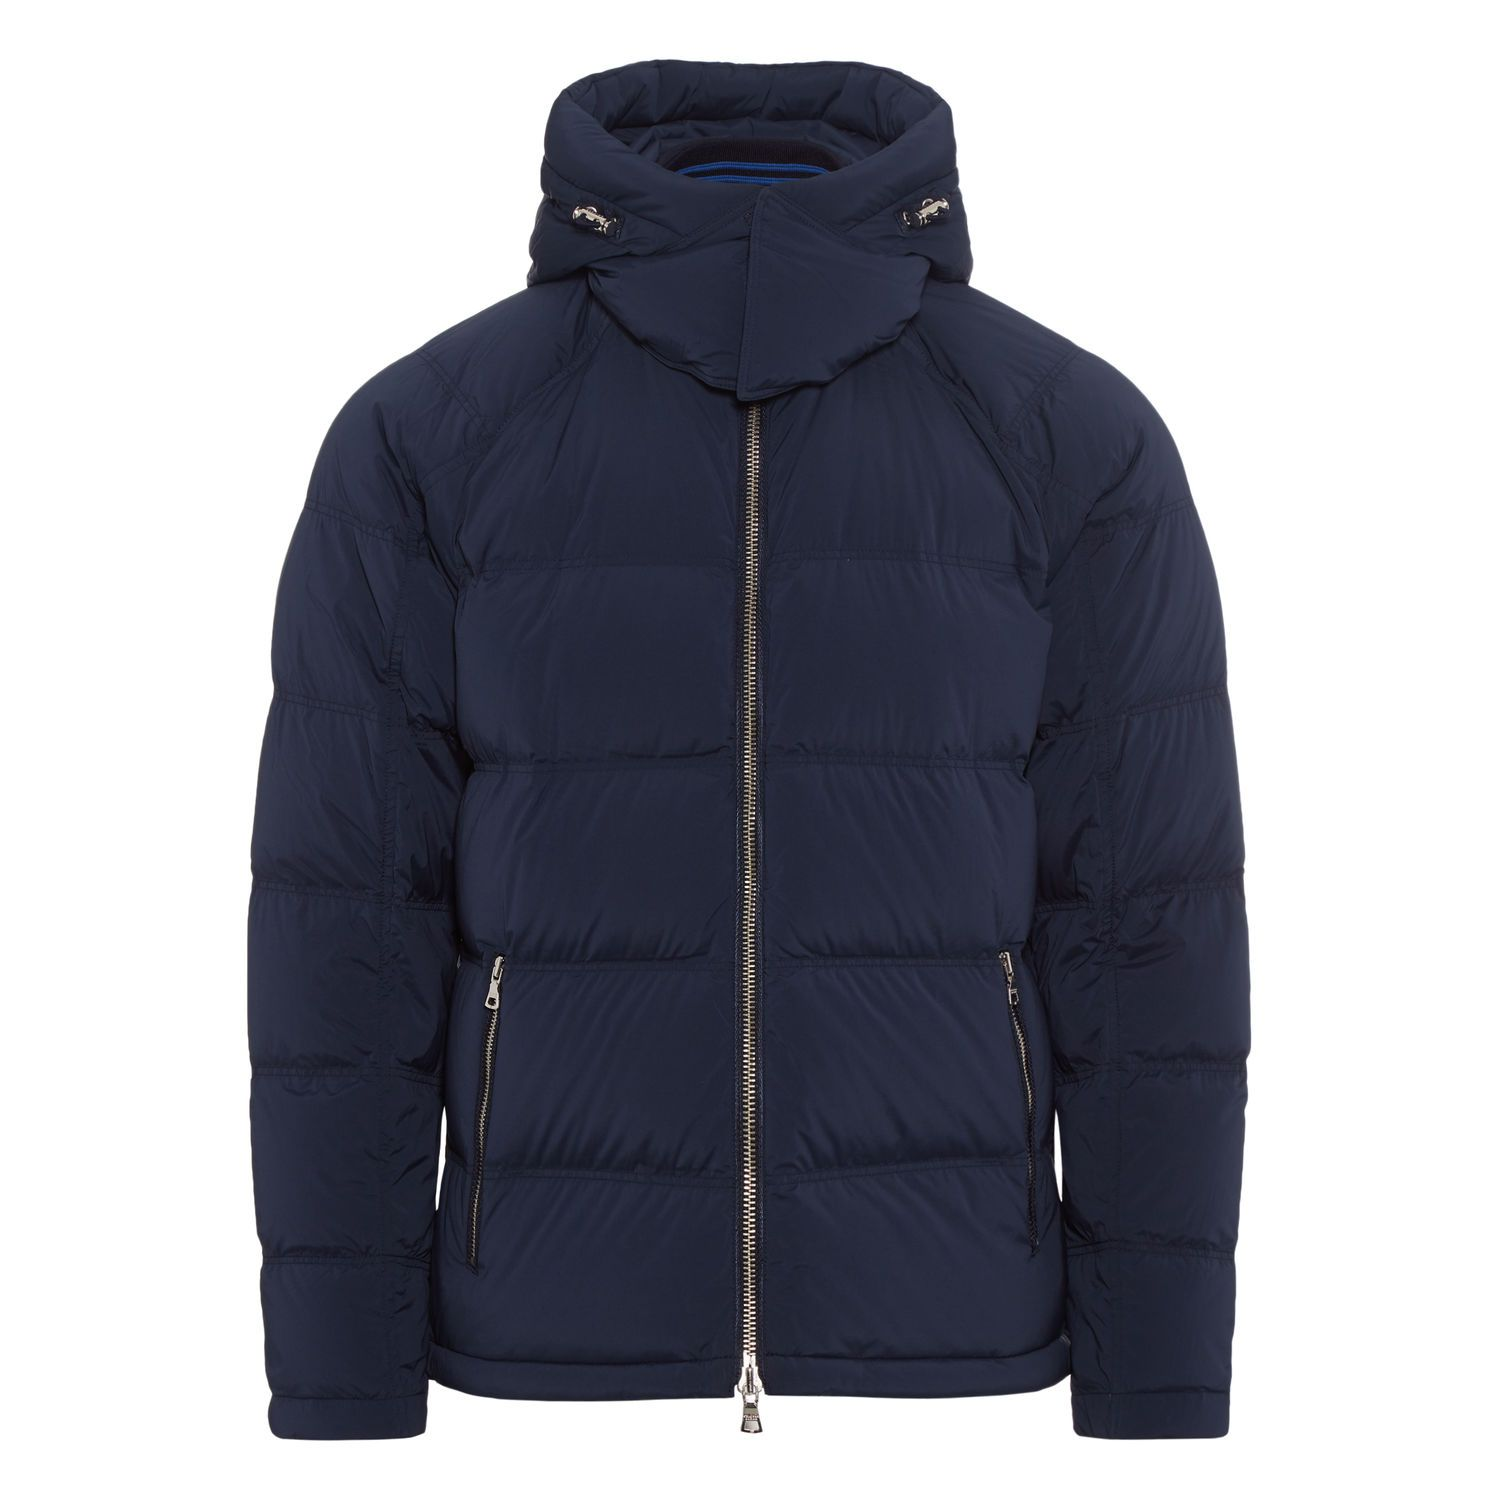 Puffer Jackets  the 11 best for men 94bfbed67